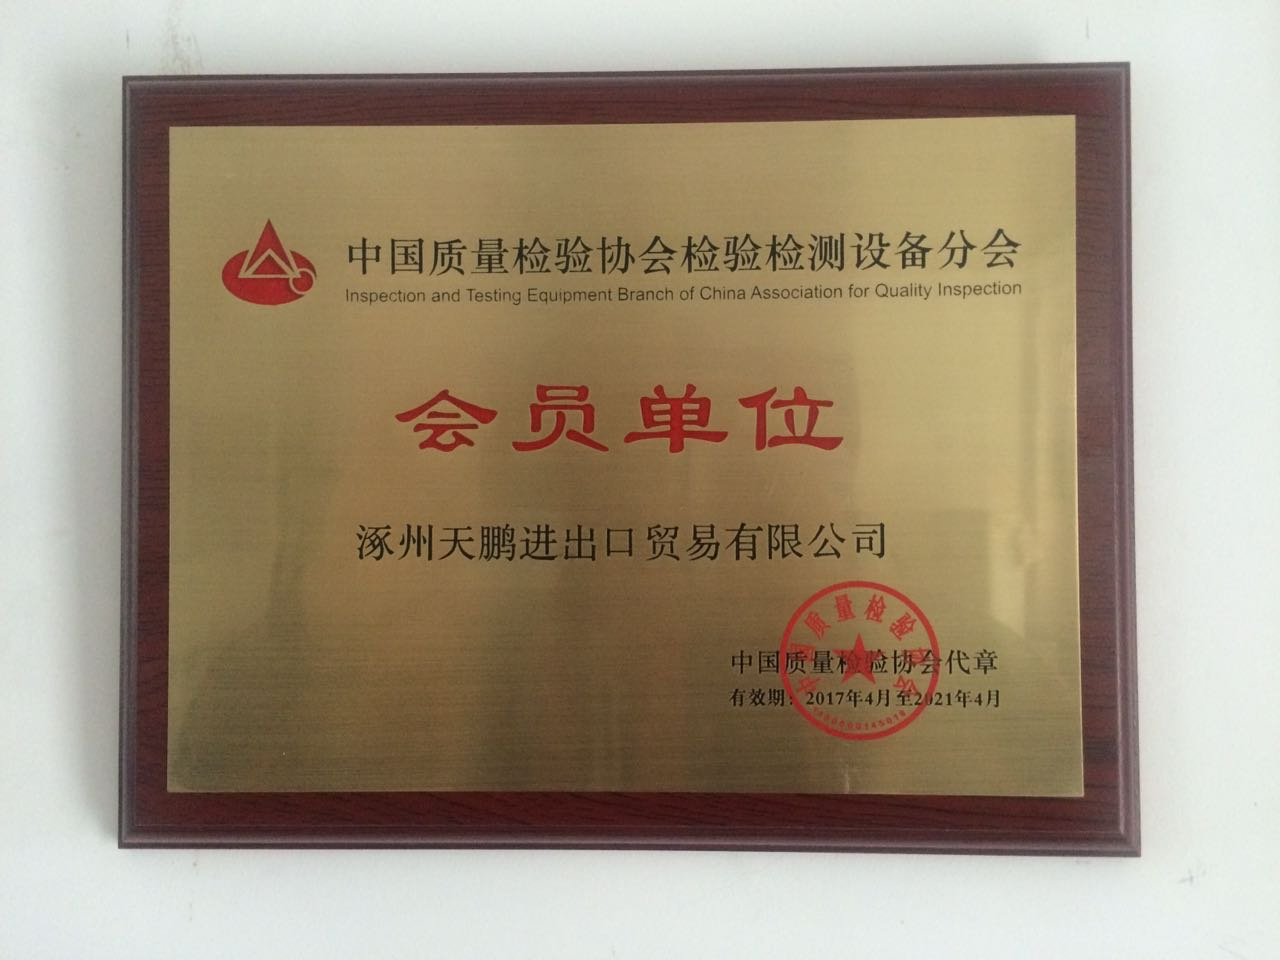 Inspection and testing equipment branch of China Association for Quality inspection